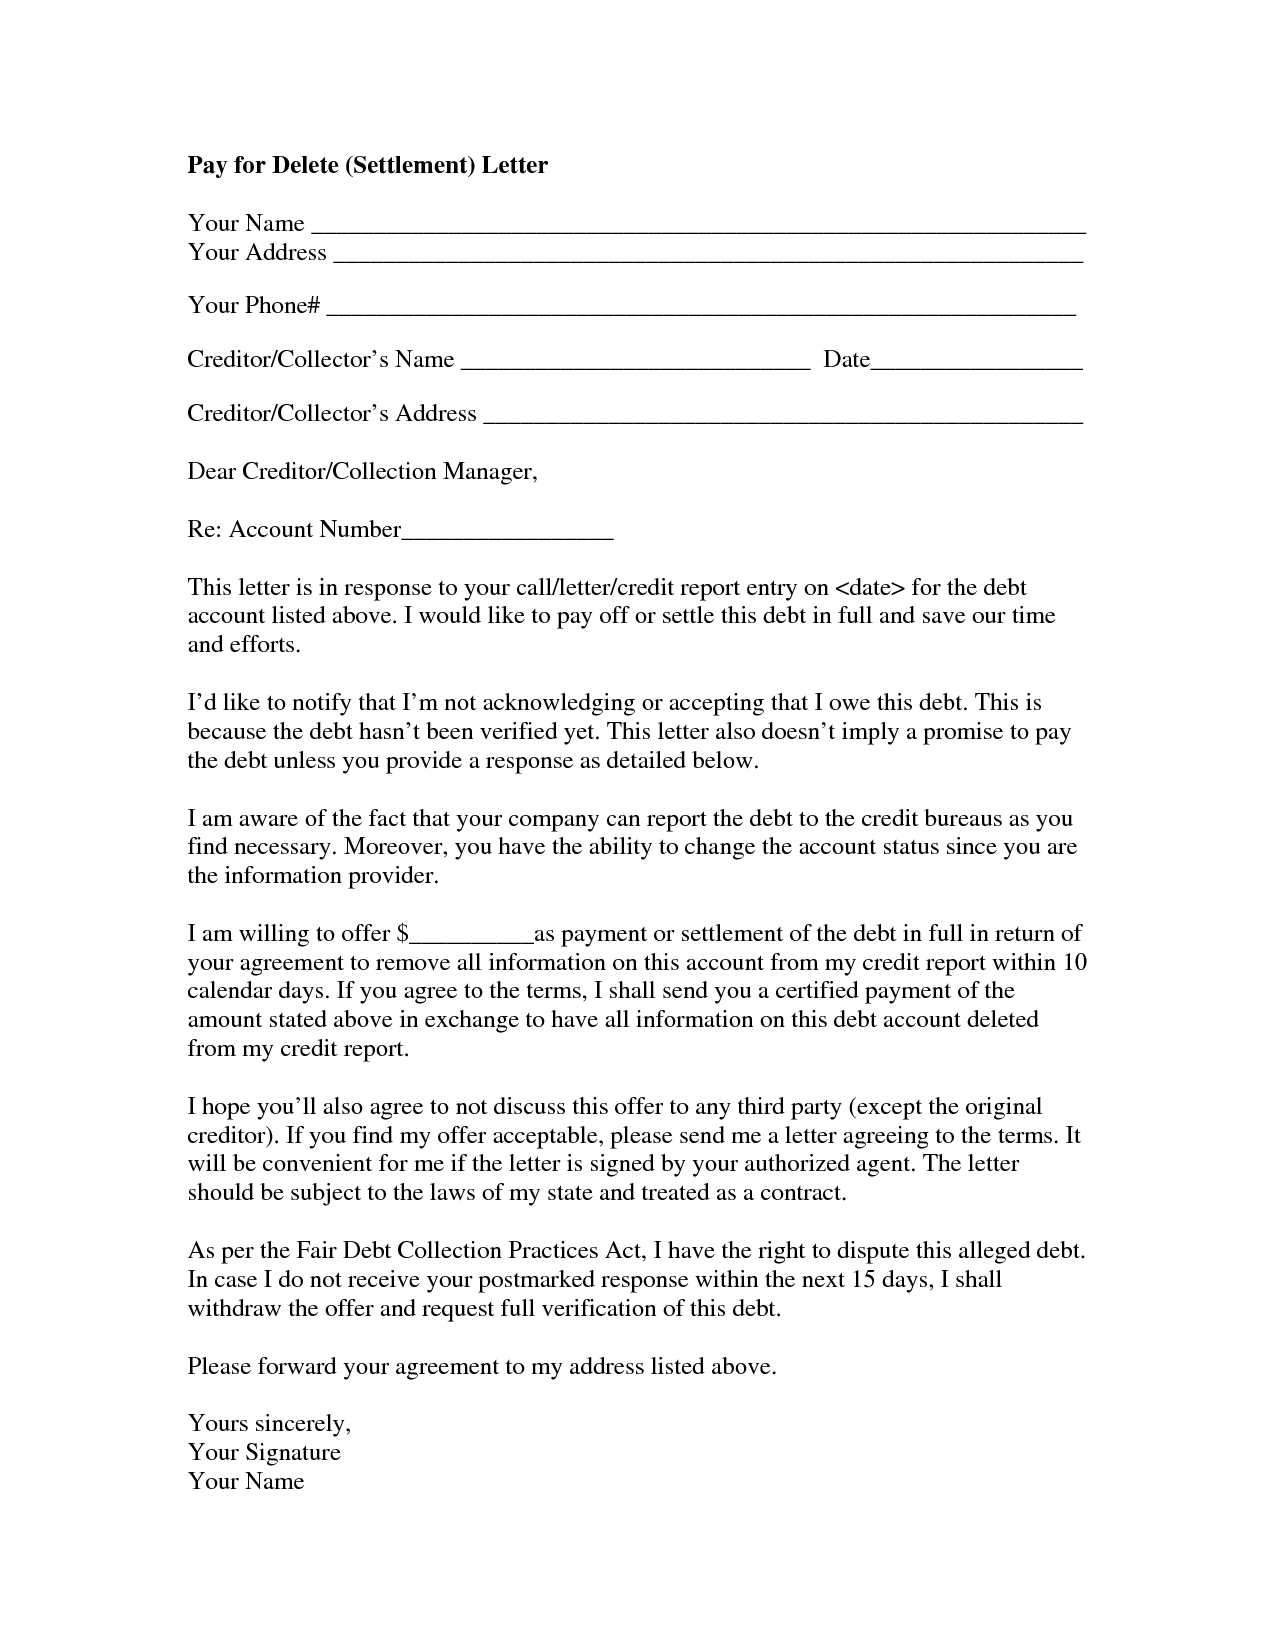 Settlement Agreement Letter Template - How to Write A Settlement Letter Letter format formal Sample